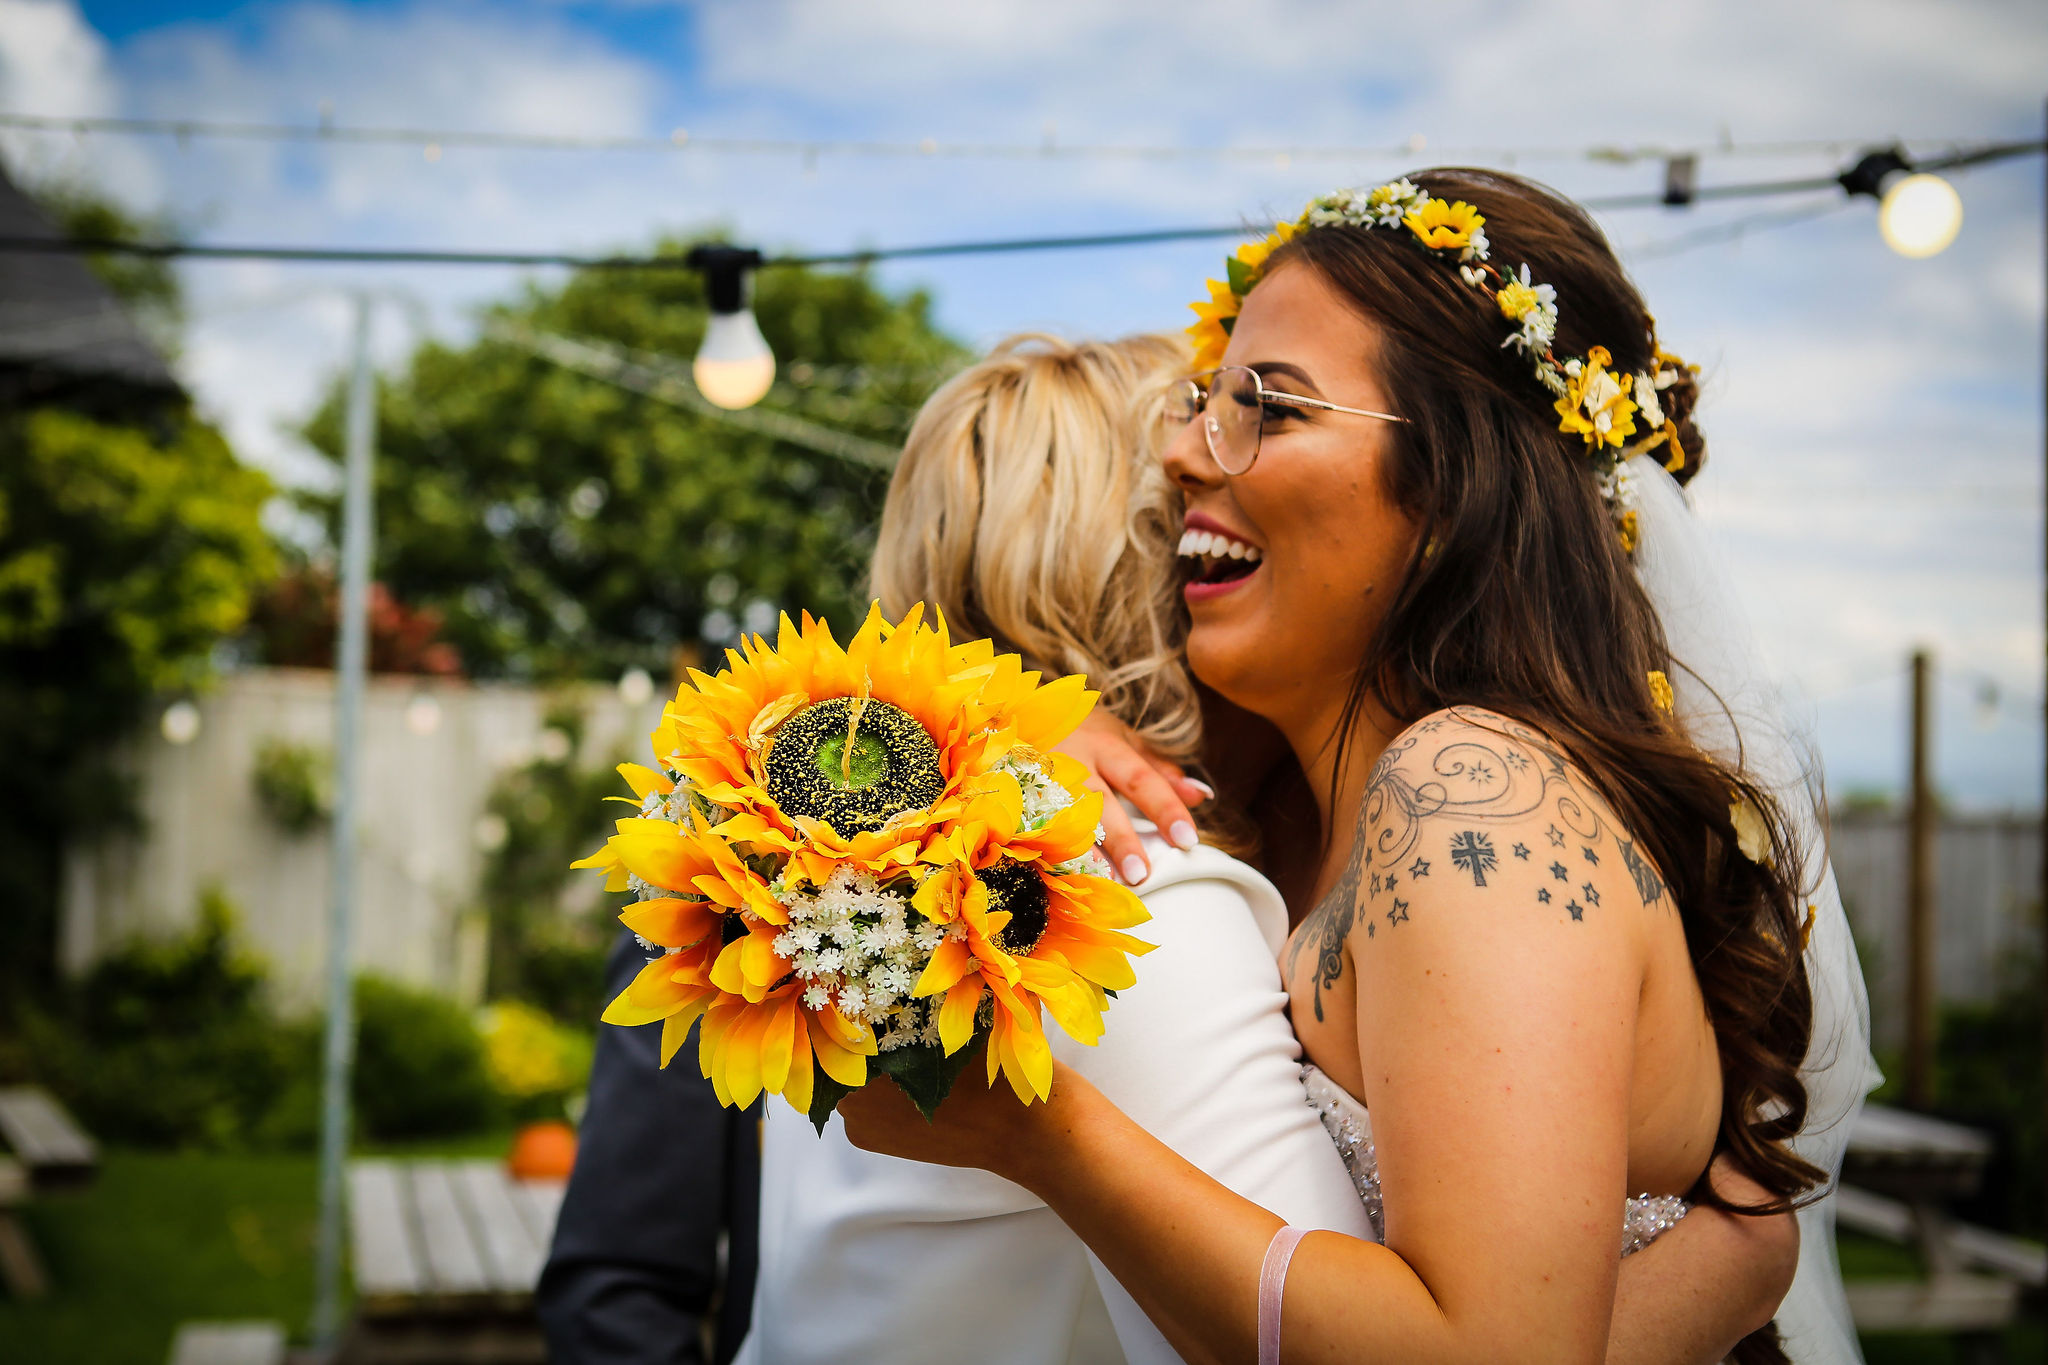 Harriet&Rhys Wedding - Magical sunflower wedding - quirky wedding with dodgems (74)